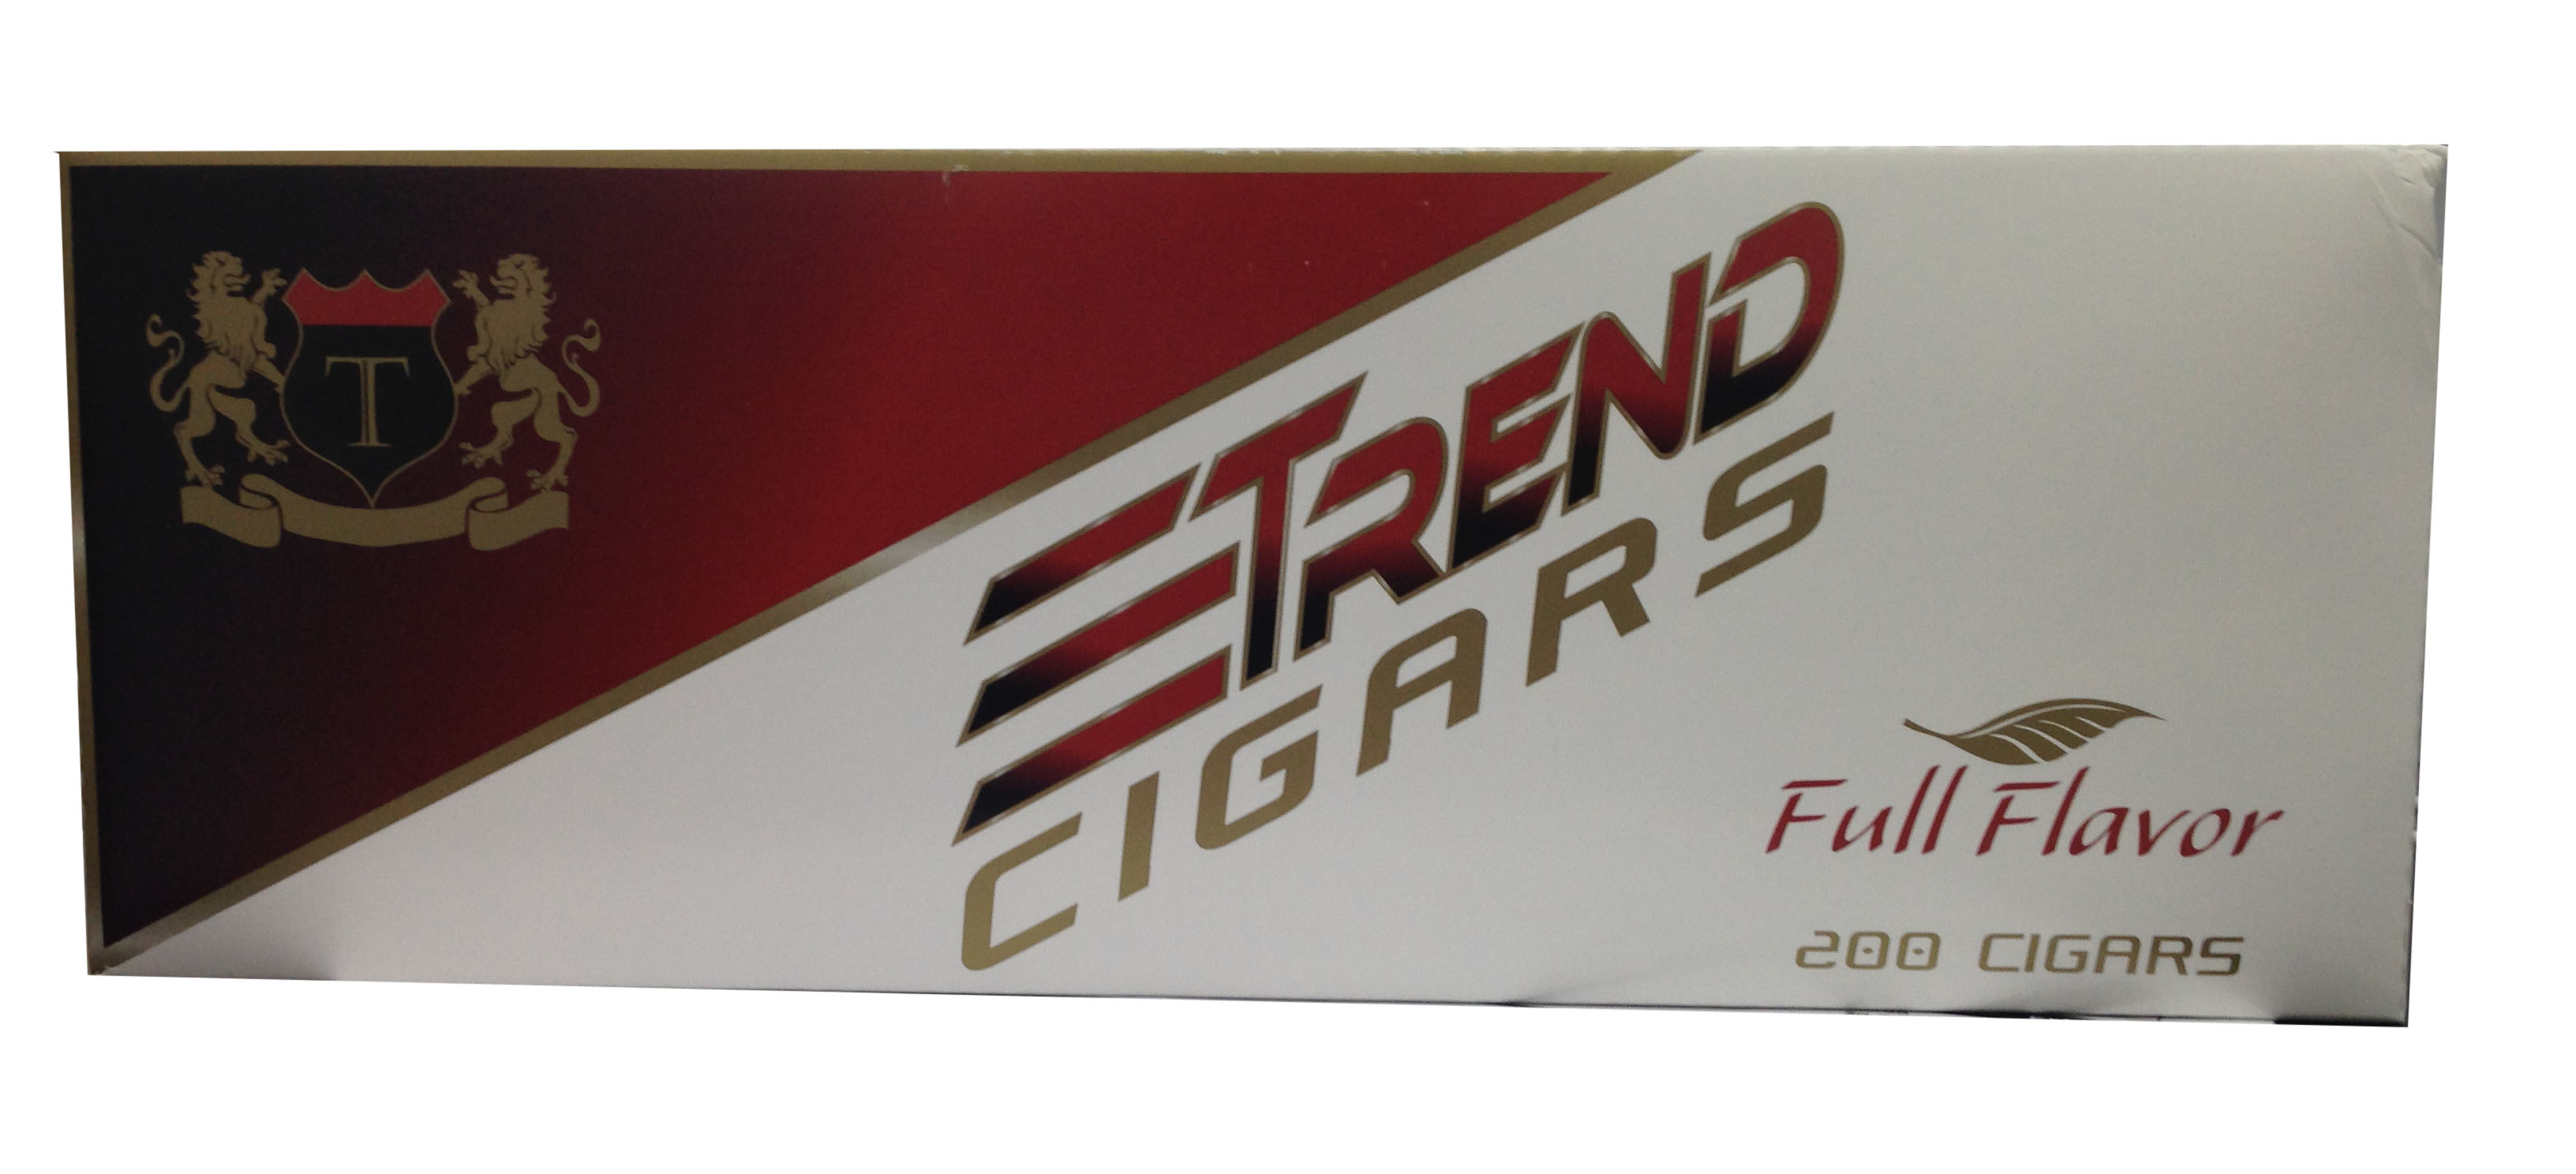 Trend Filtered Cigars Full Flavor